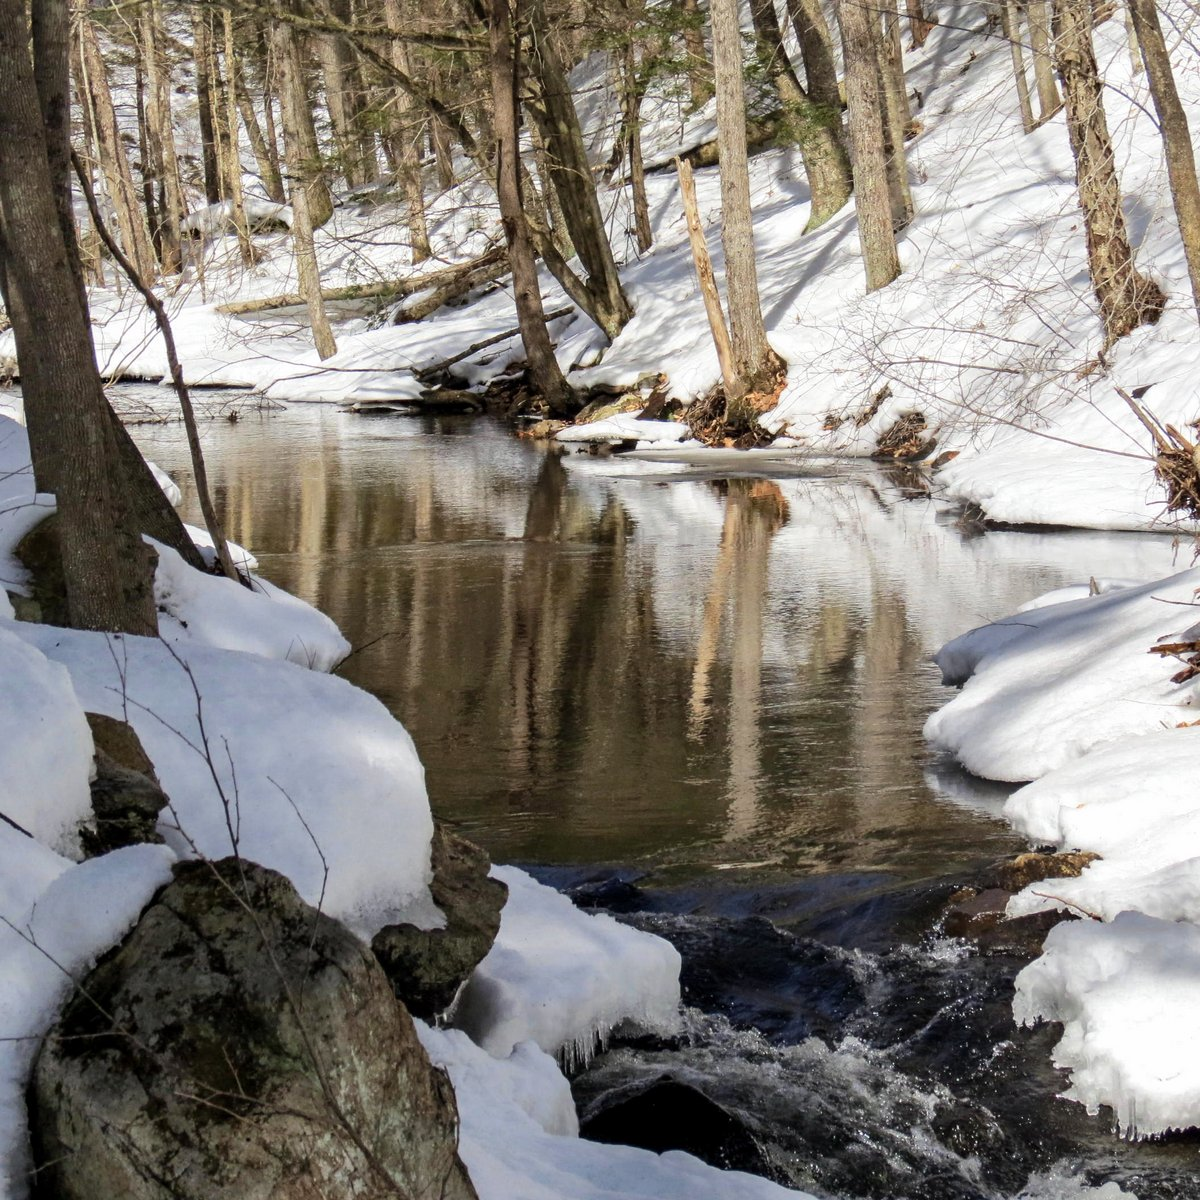 10. Ice Free Brook